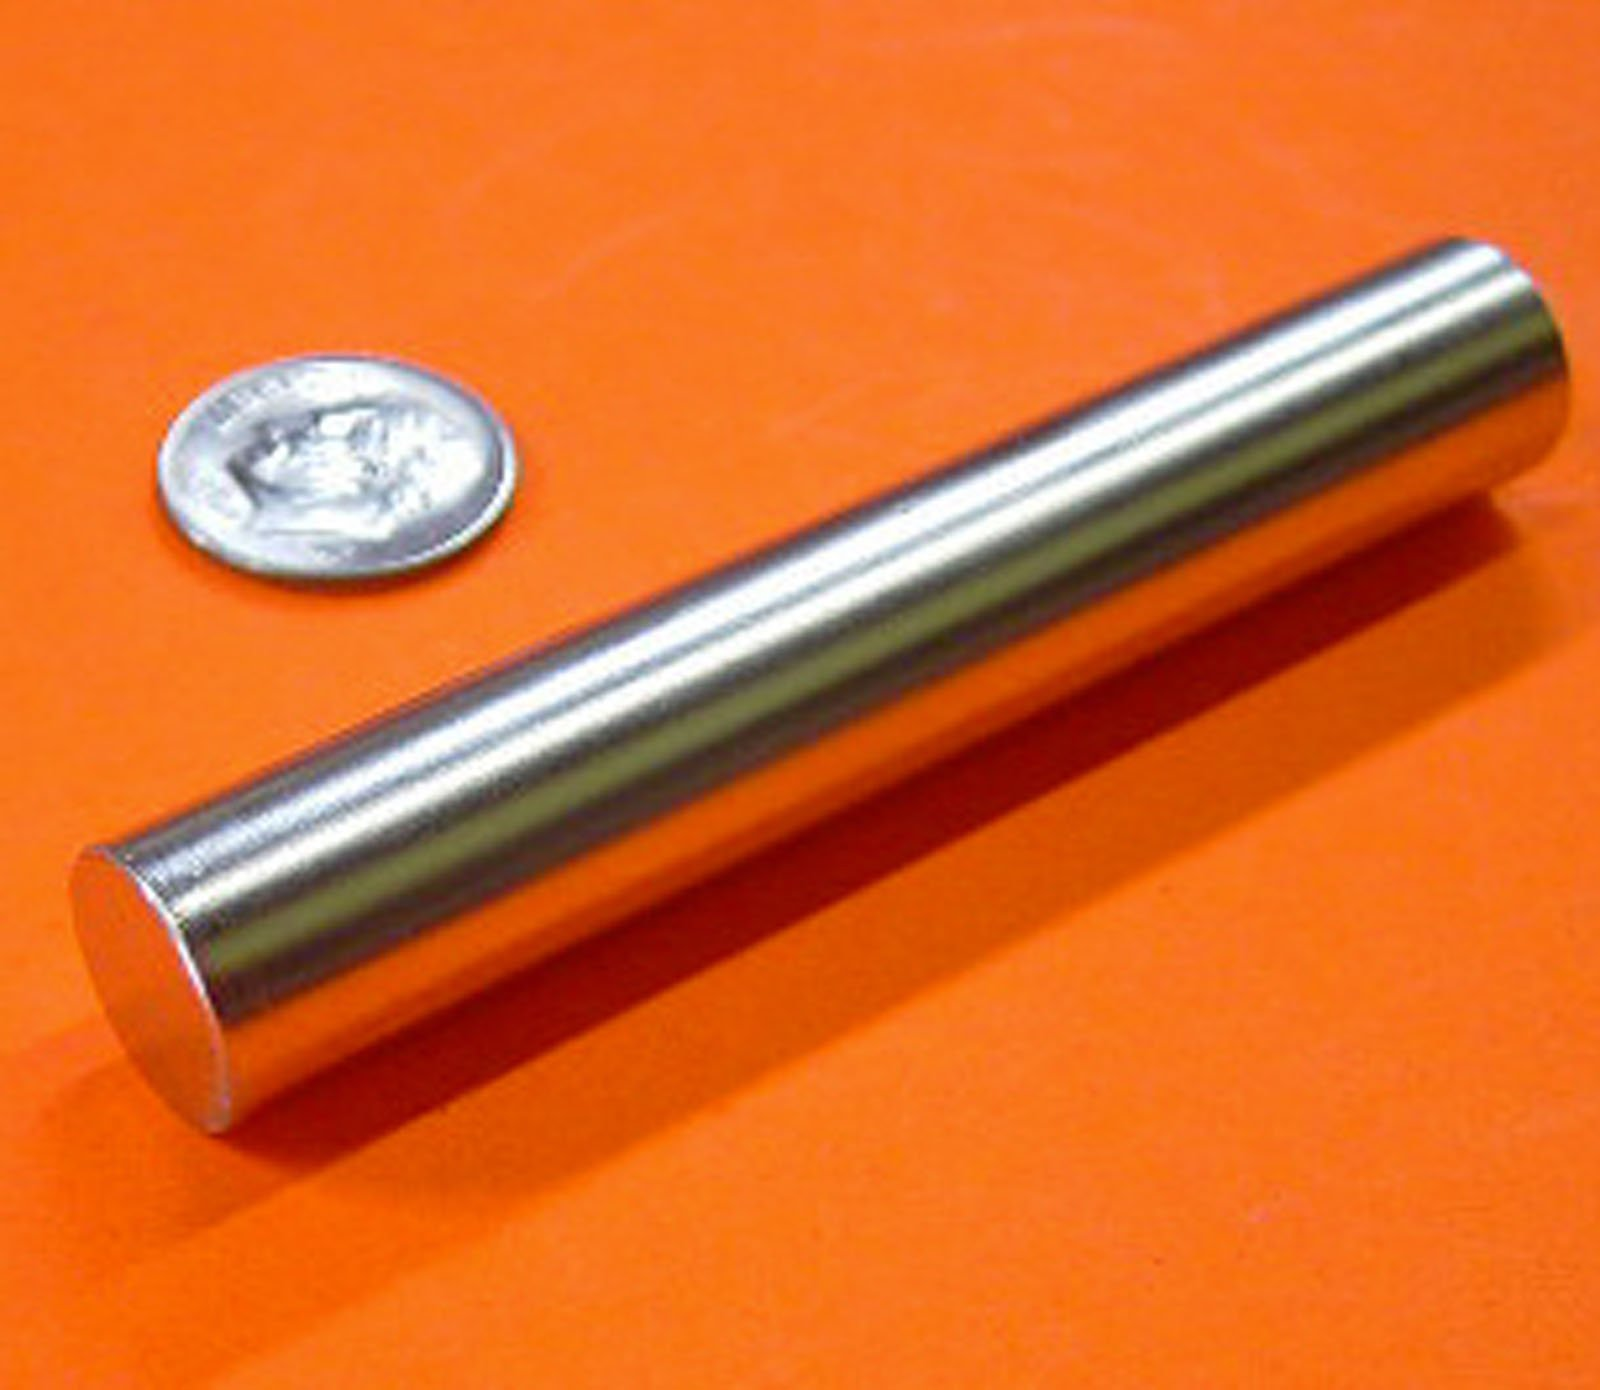 Super Strong Neodymium Magnet 1/2'' x 3'' NdFeB Magnet Cylinder, The World's Strongest & Most Powerful Rare Earth Magnets by Applied Magnets